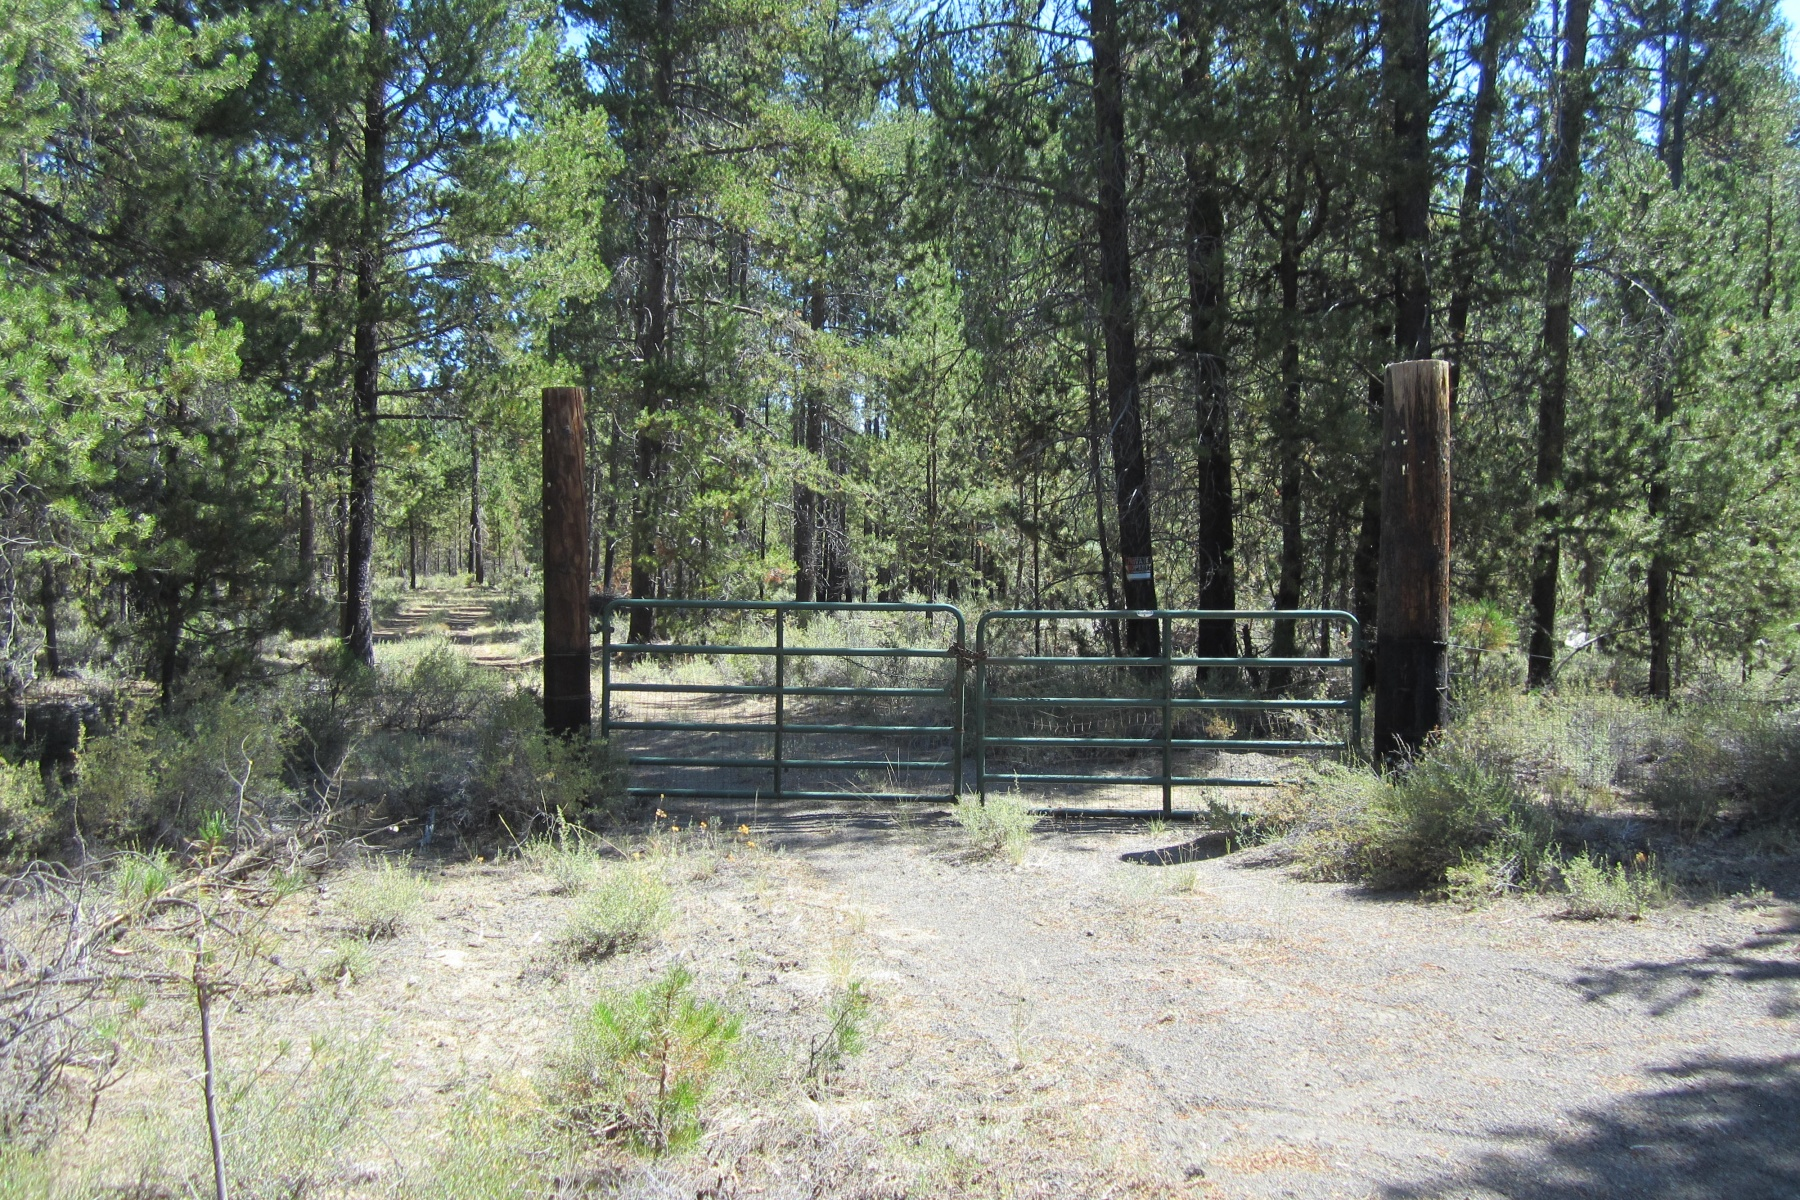 Terreno por un Venta en Beautiful 10 Acre Building Site 0 Del Pino Dr Lot 00200 La Pine, Oregon, 97739 Estados Unidos